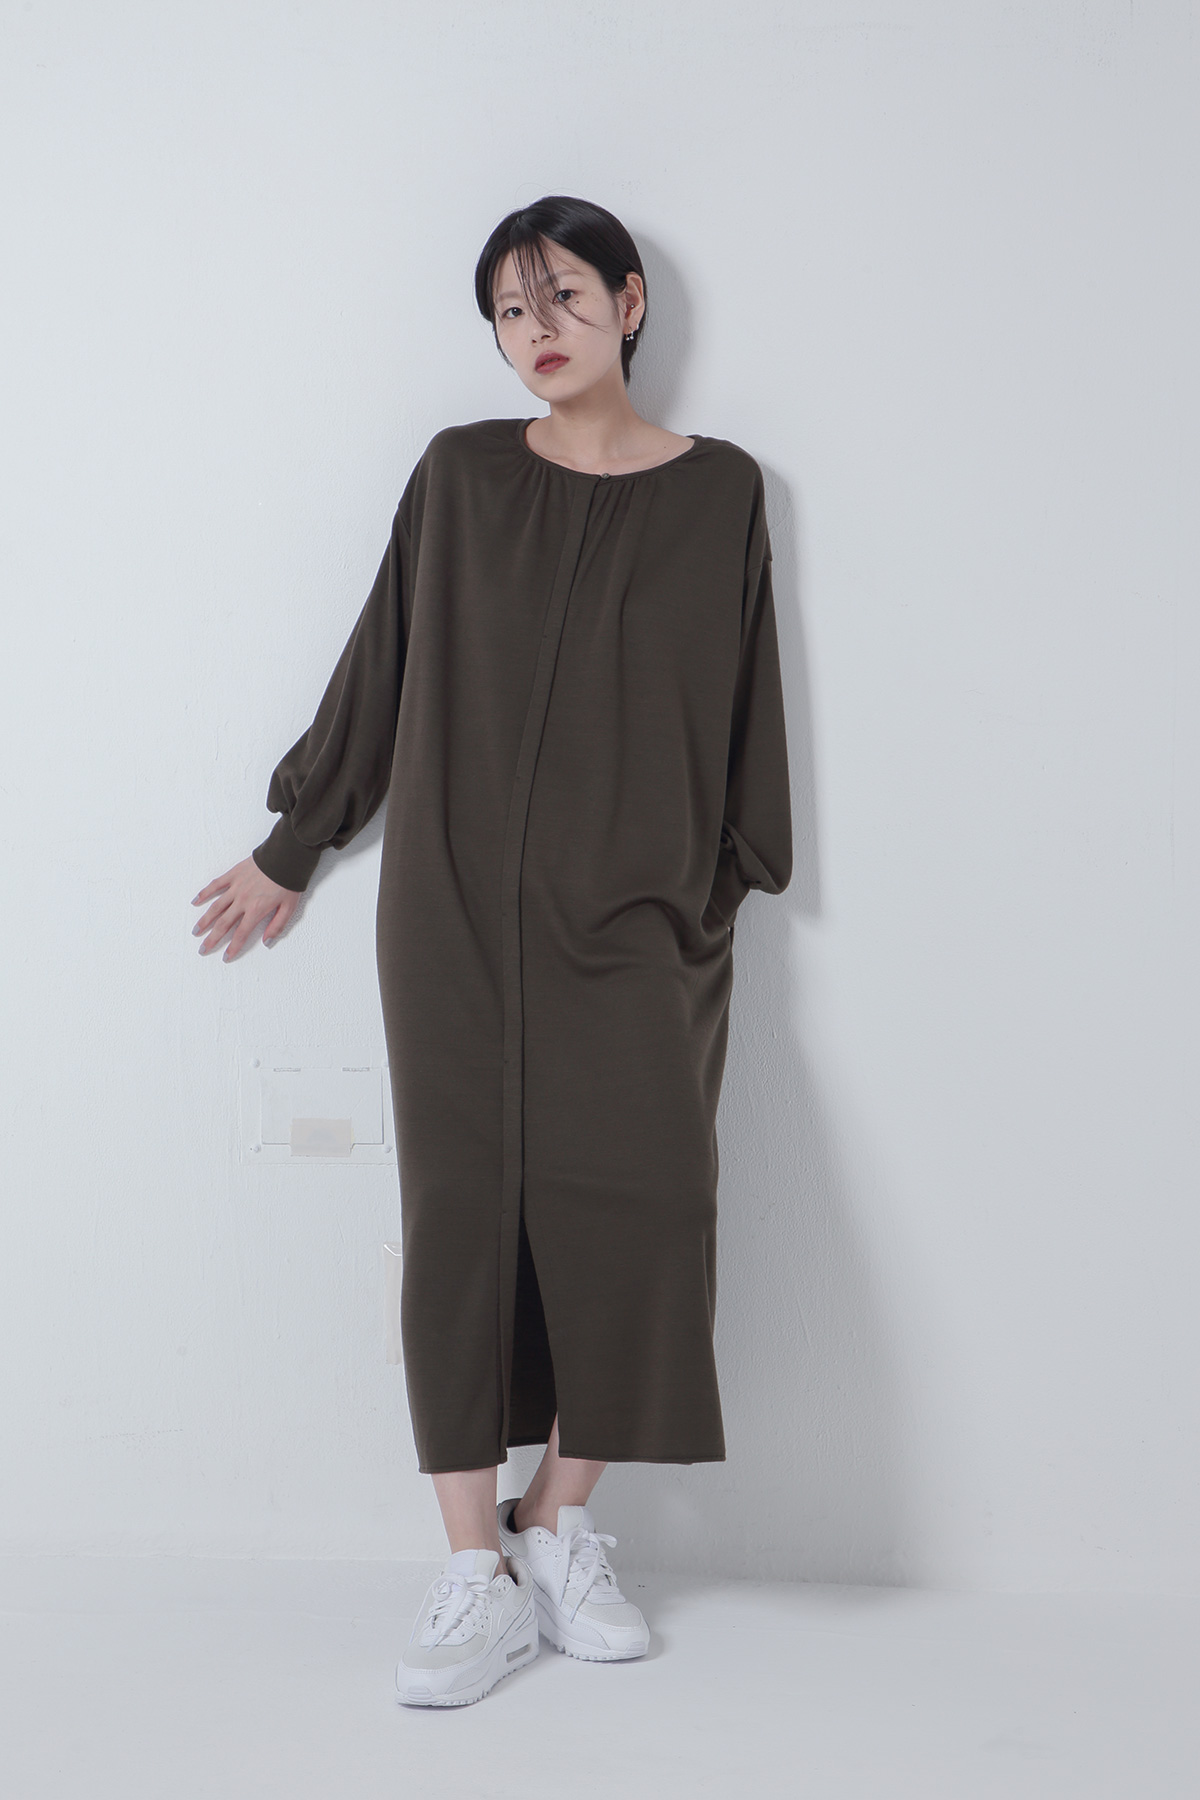 BO205720-khakj Thermos Light Ponte Park shirts Dress -KHAKI-【BO205720】Del.Oct.